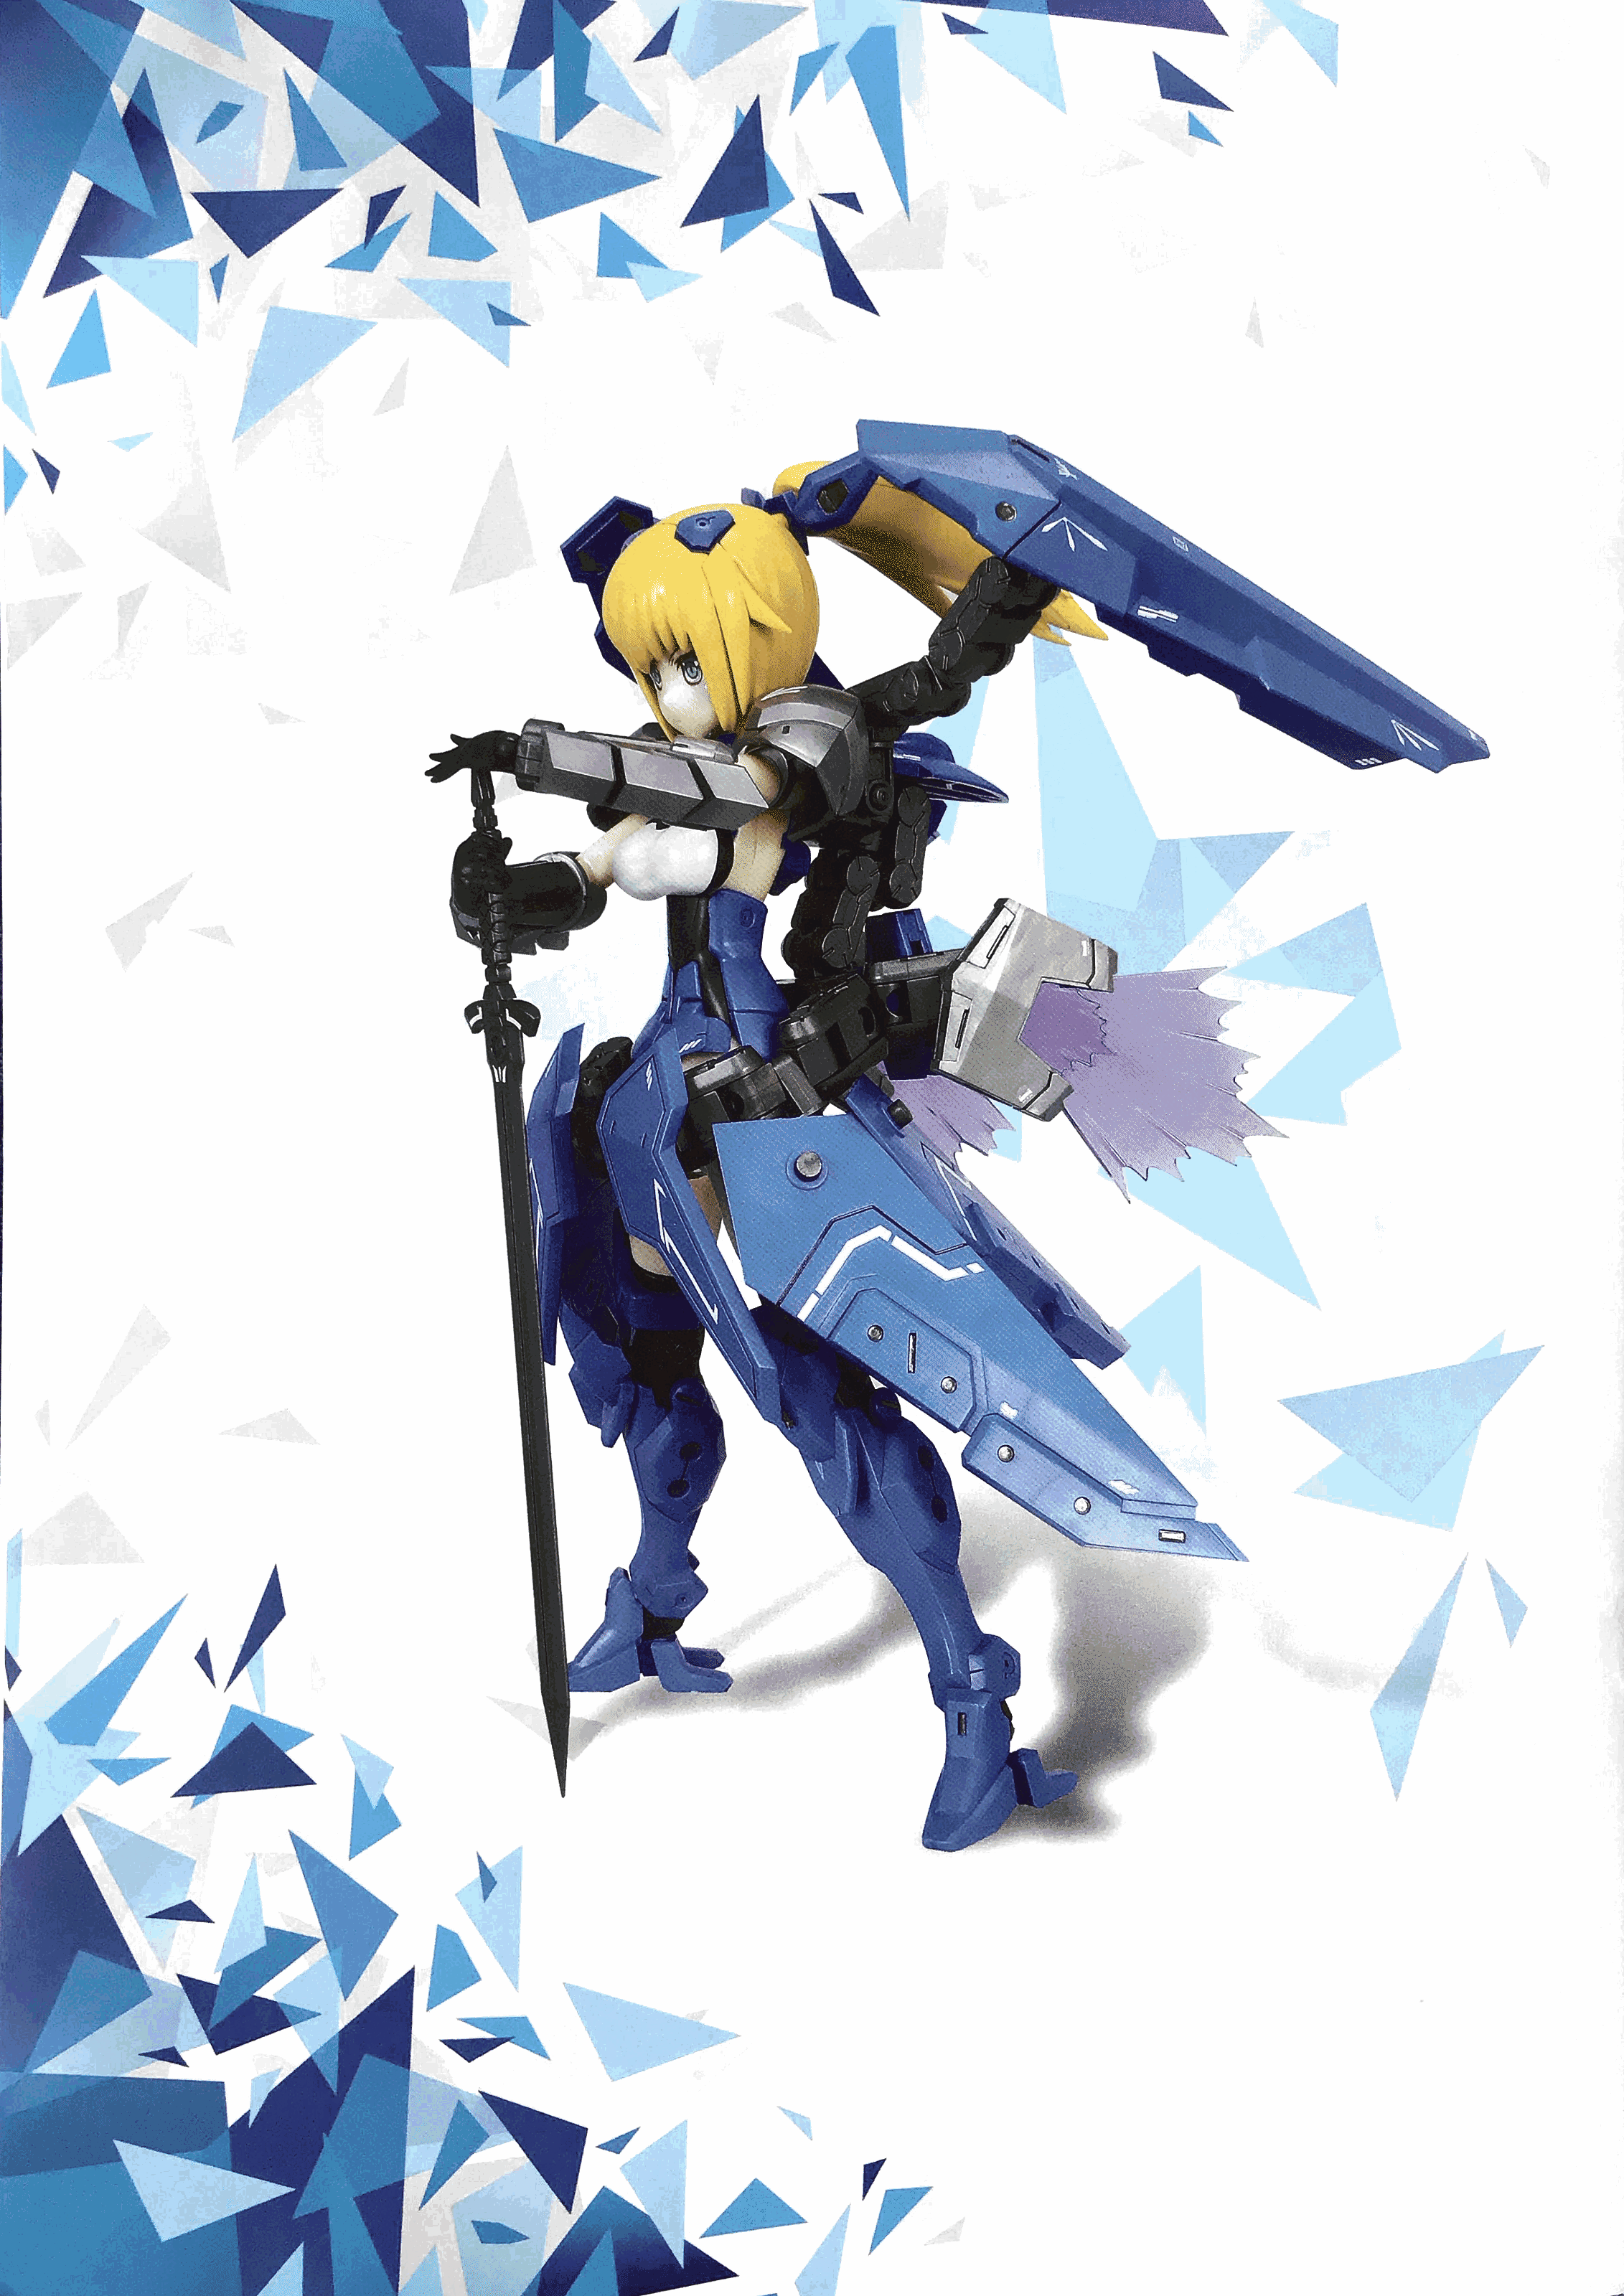 s262_pretty_armor_ver1_16.png